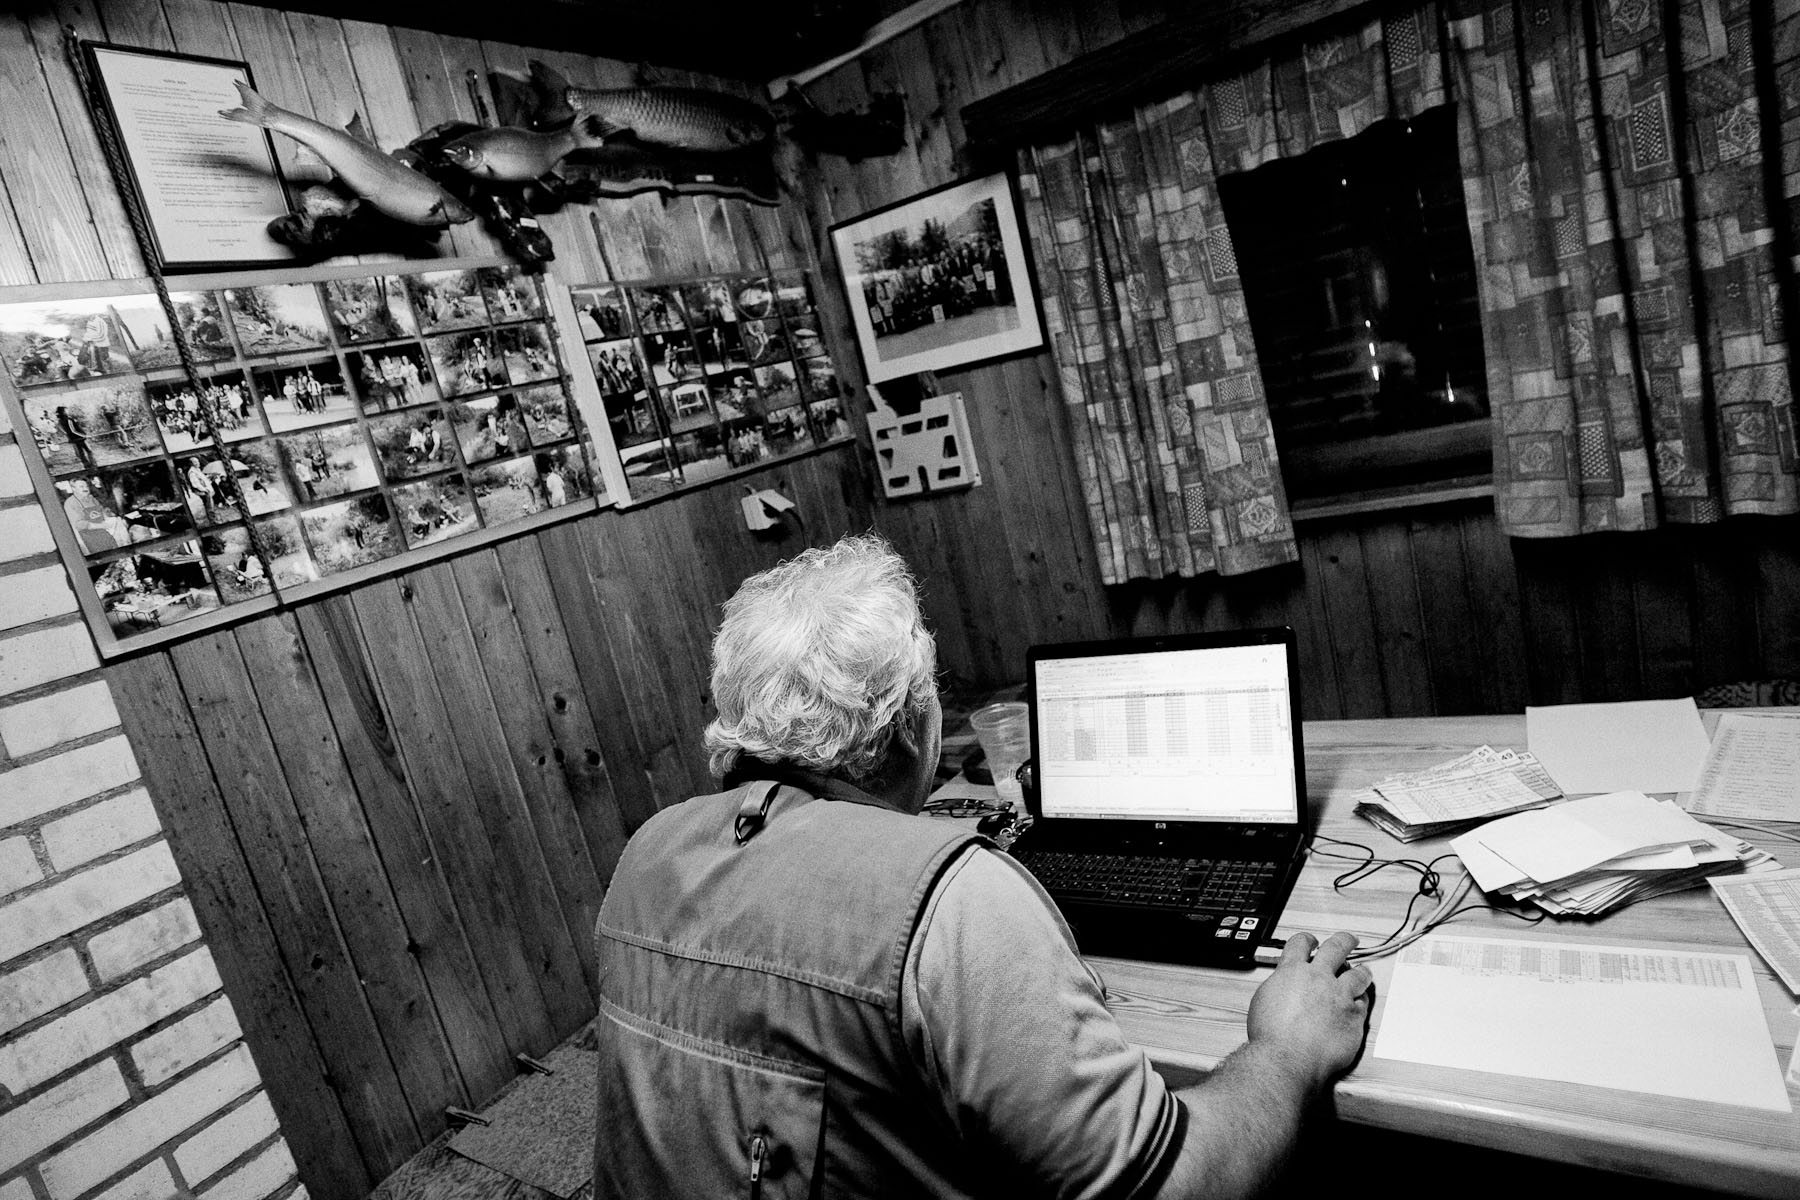 Sašo Rebula calculates results in a fishing club cottage after the National Fly Fishing Championship competition in Kamnik, Slovenia, May 29, 2011.